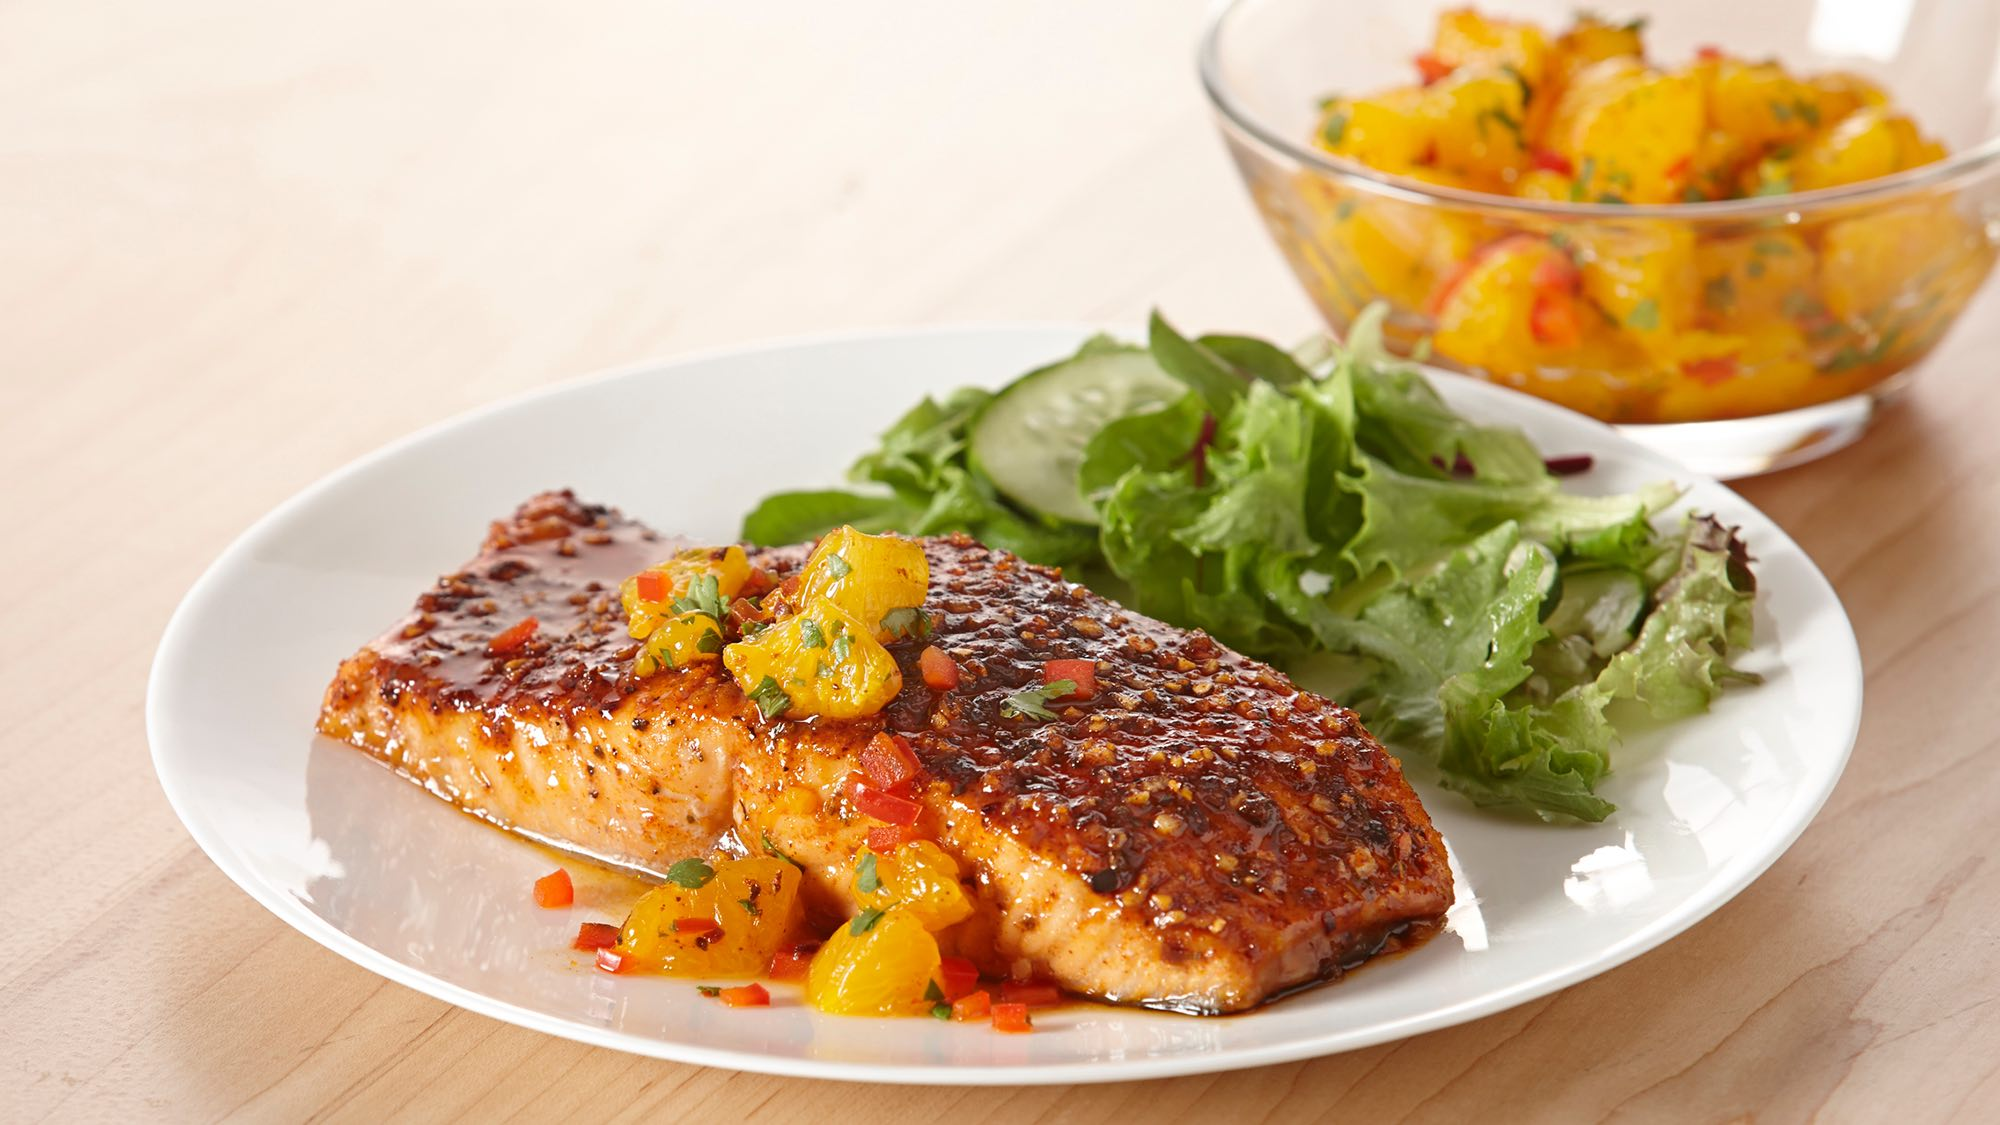 sweet-n-smoky-salmon-with-orange-salsa.jpg